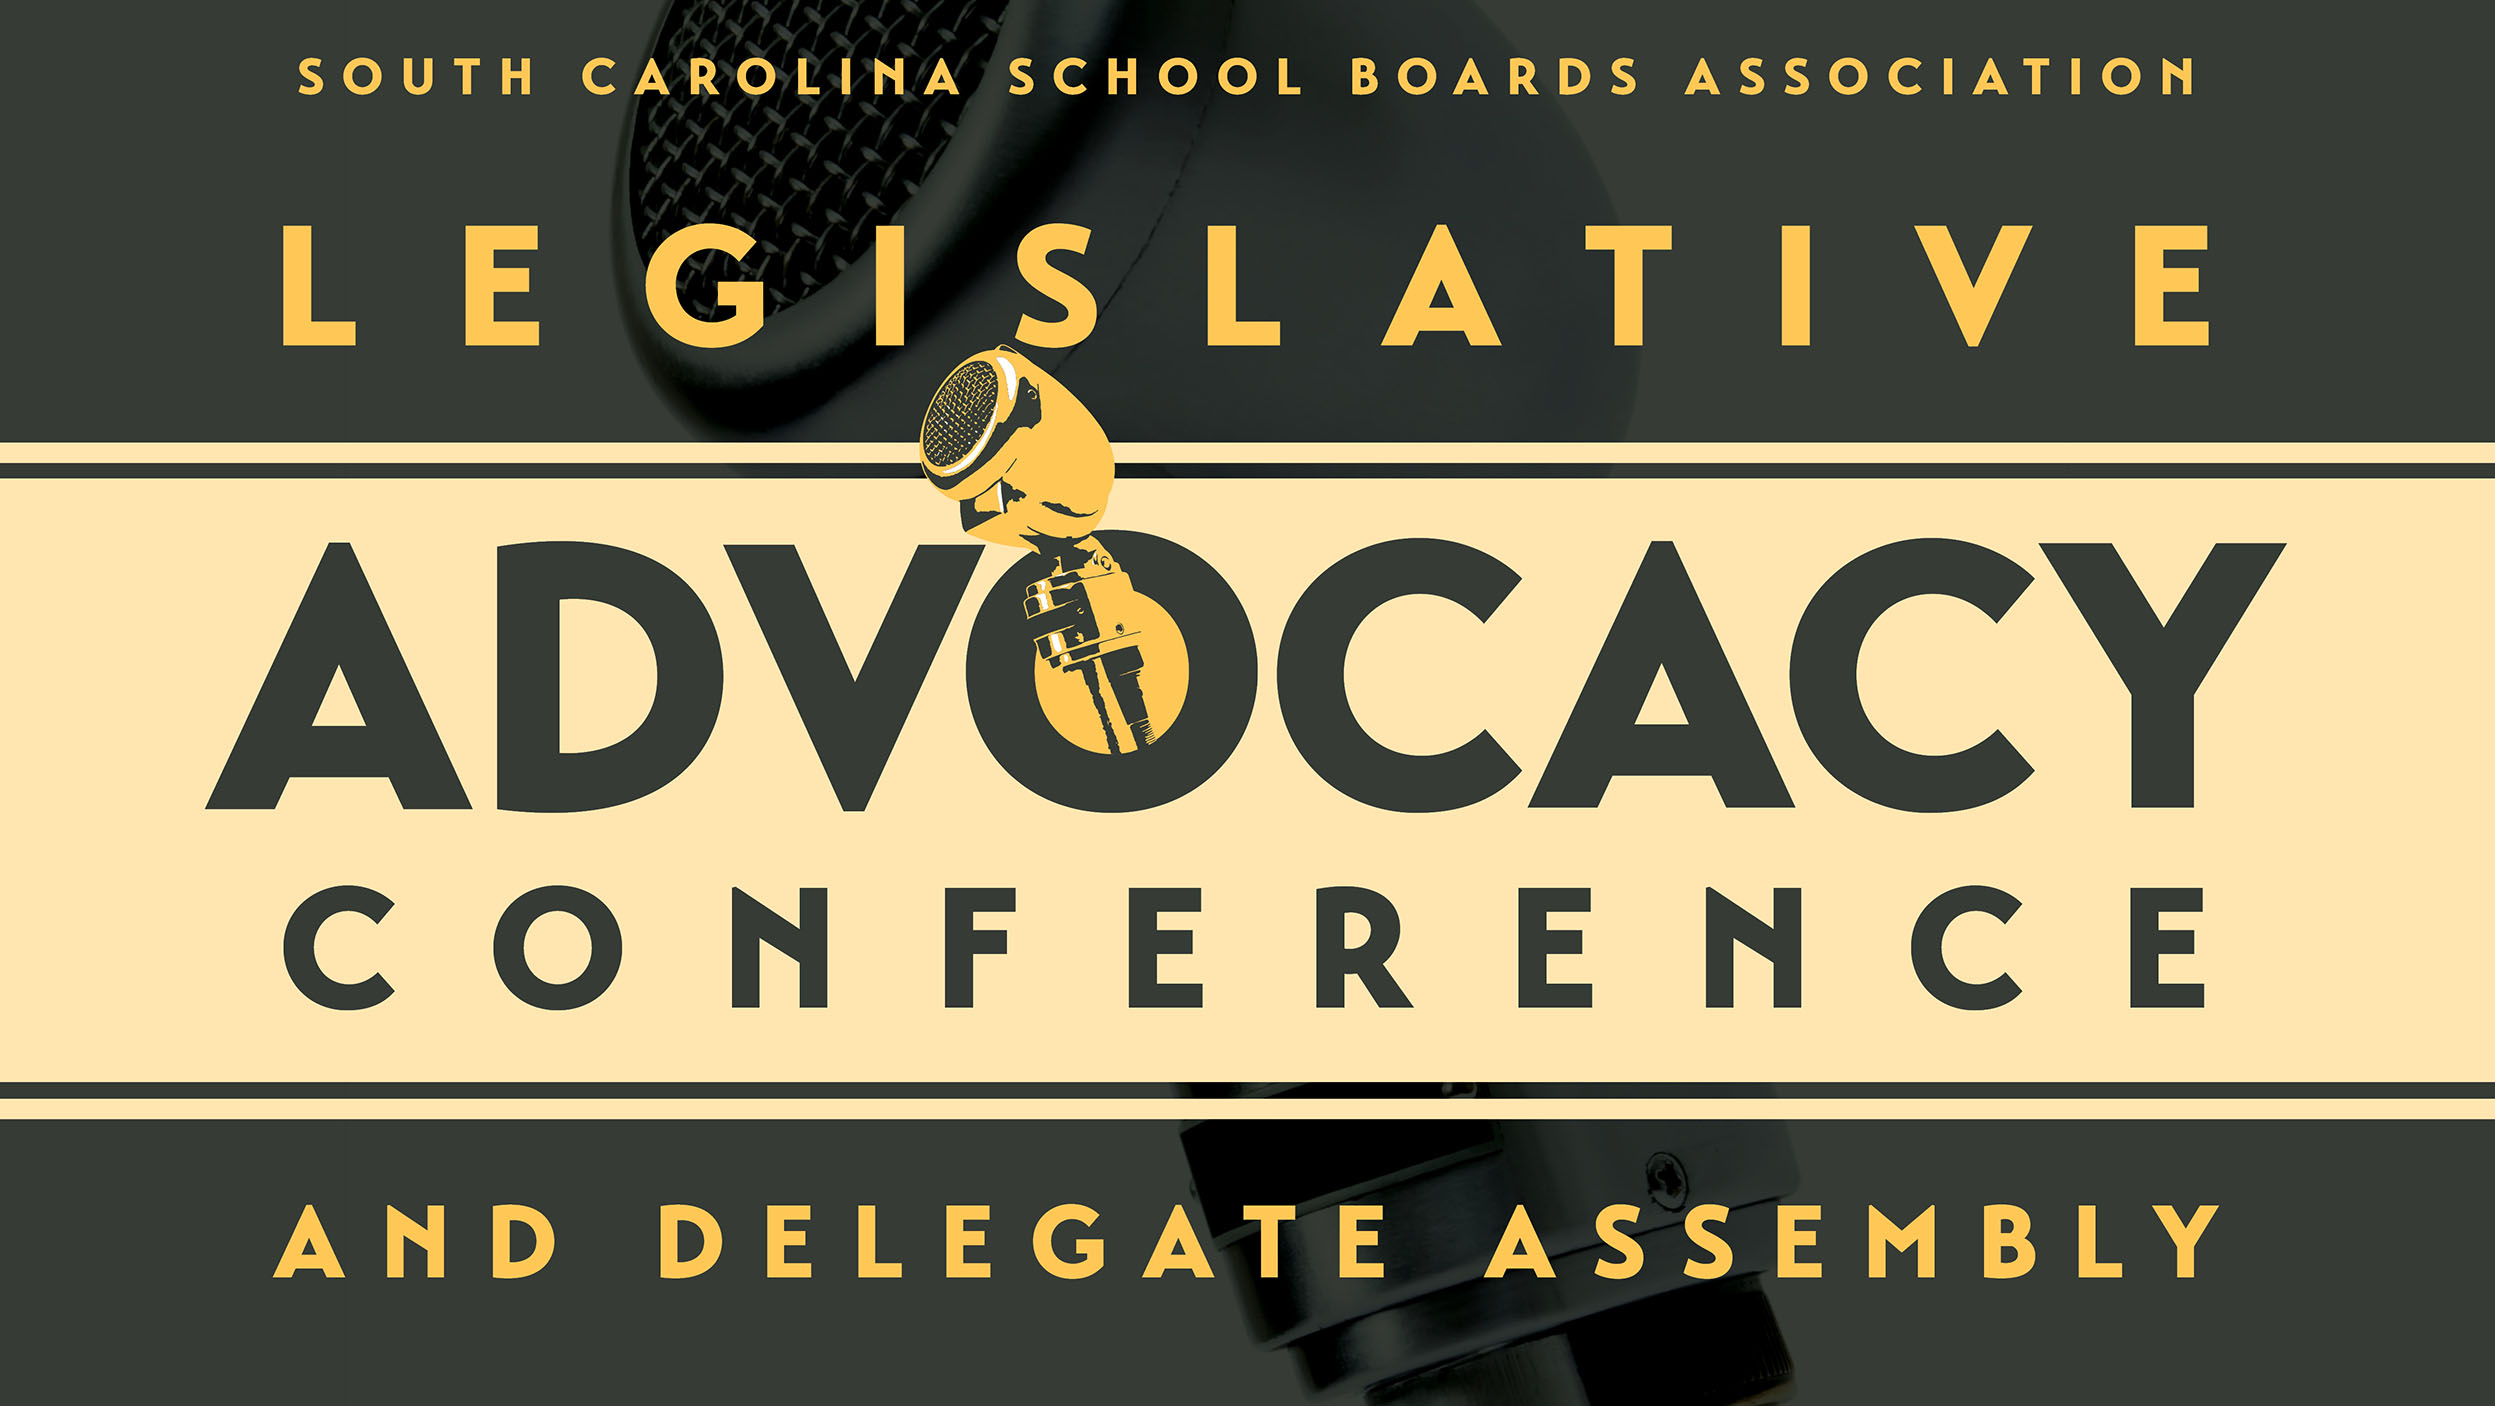 LEGISLATIVE ADVOCACY CONFERENCE AND DELEGATE ASSEMBLY